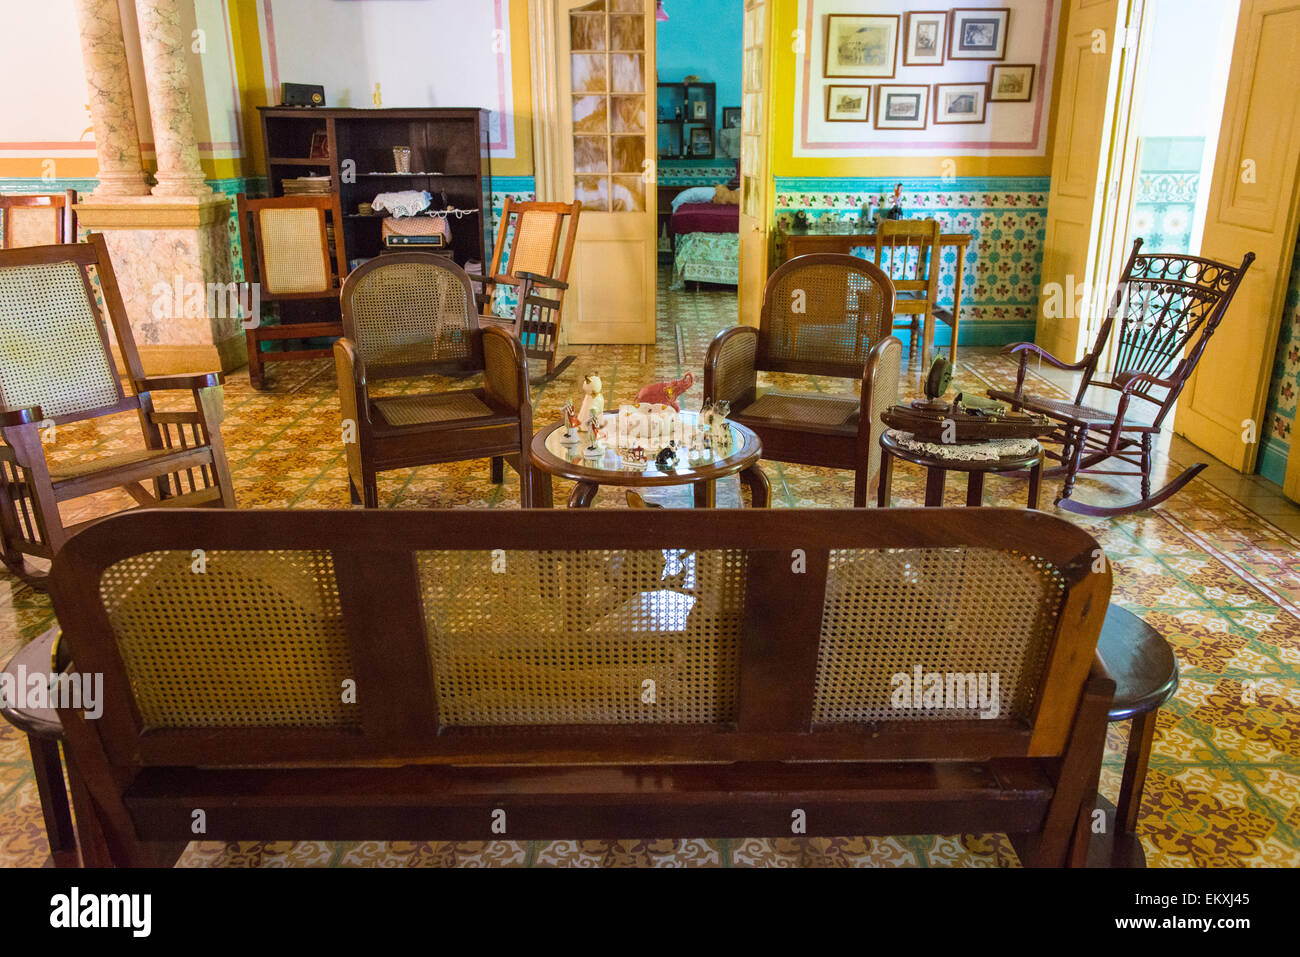 Cuba Trinidad typical Cuban home old antique furniture ornate walls & tiles lamp shades rocking chairs table - Stock Image